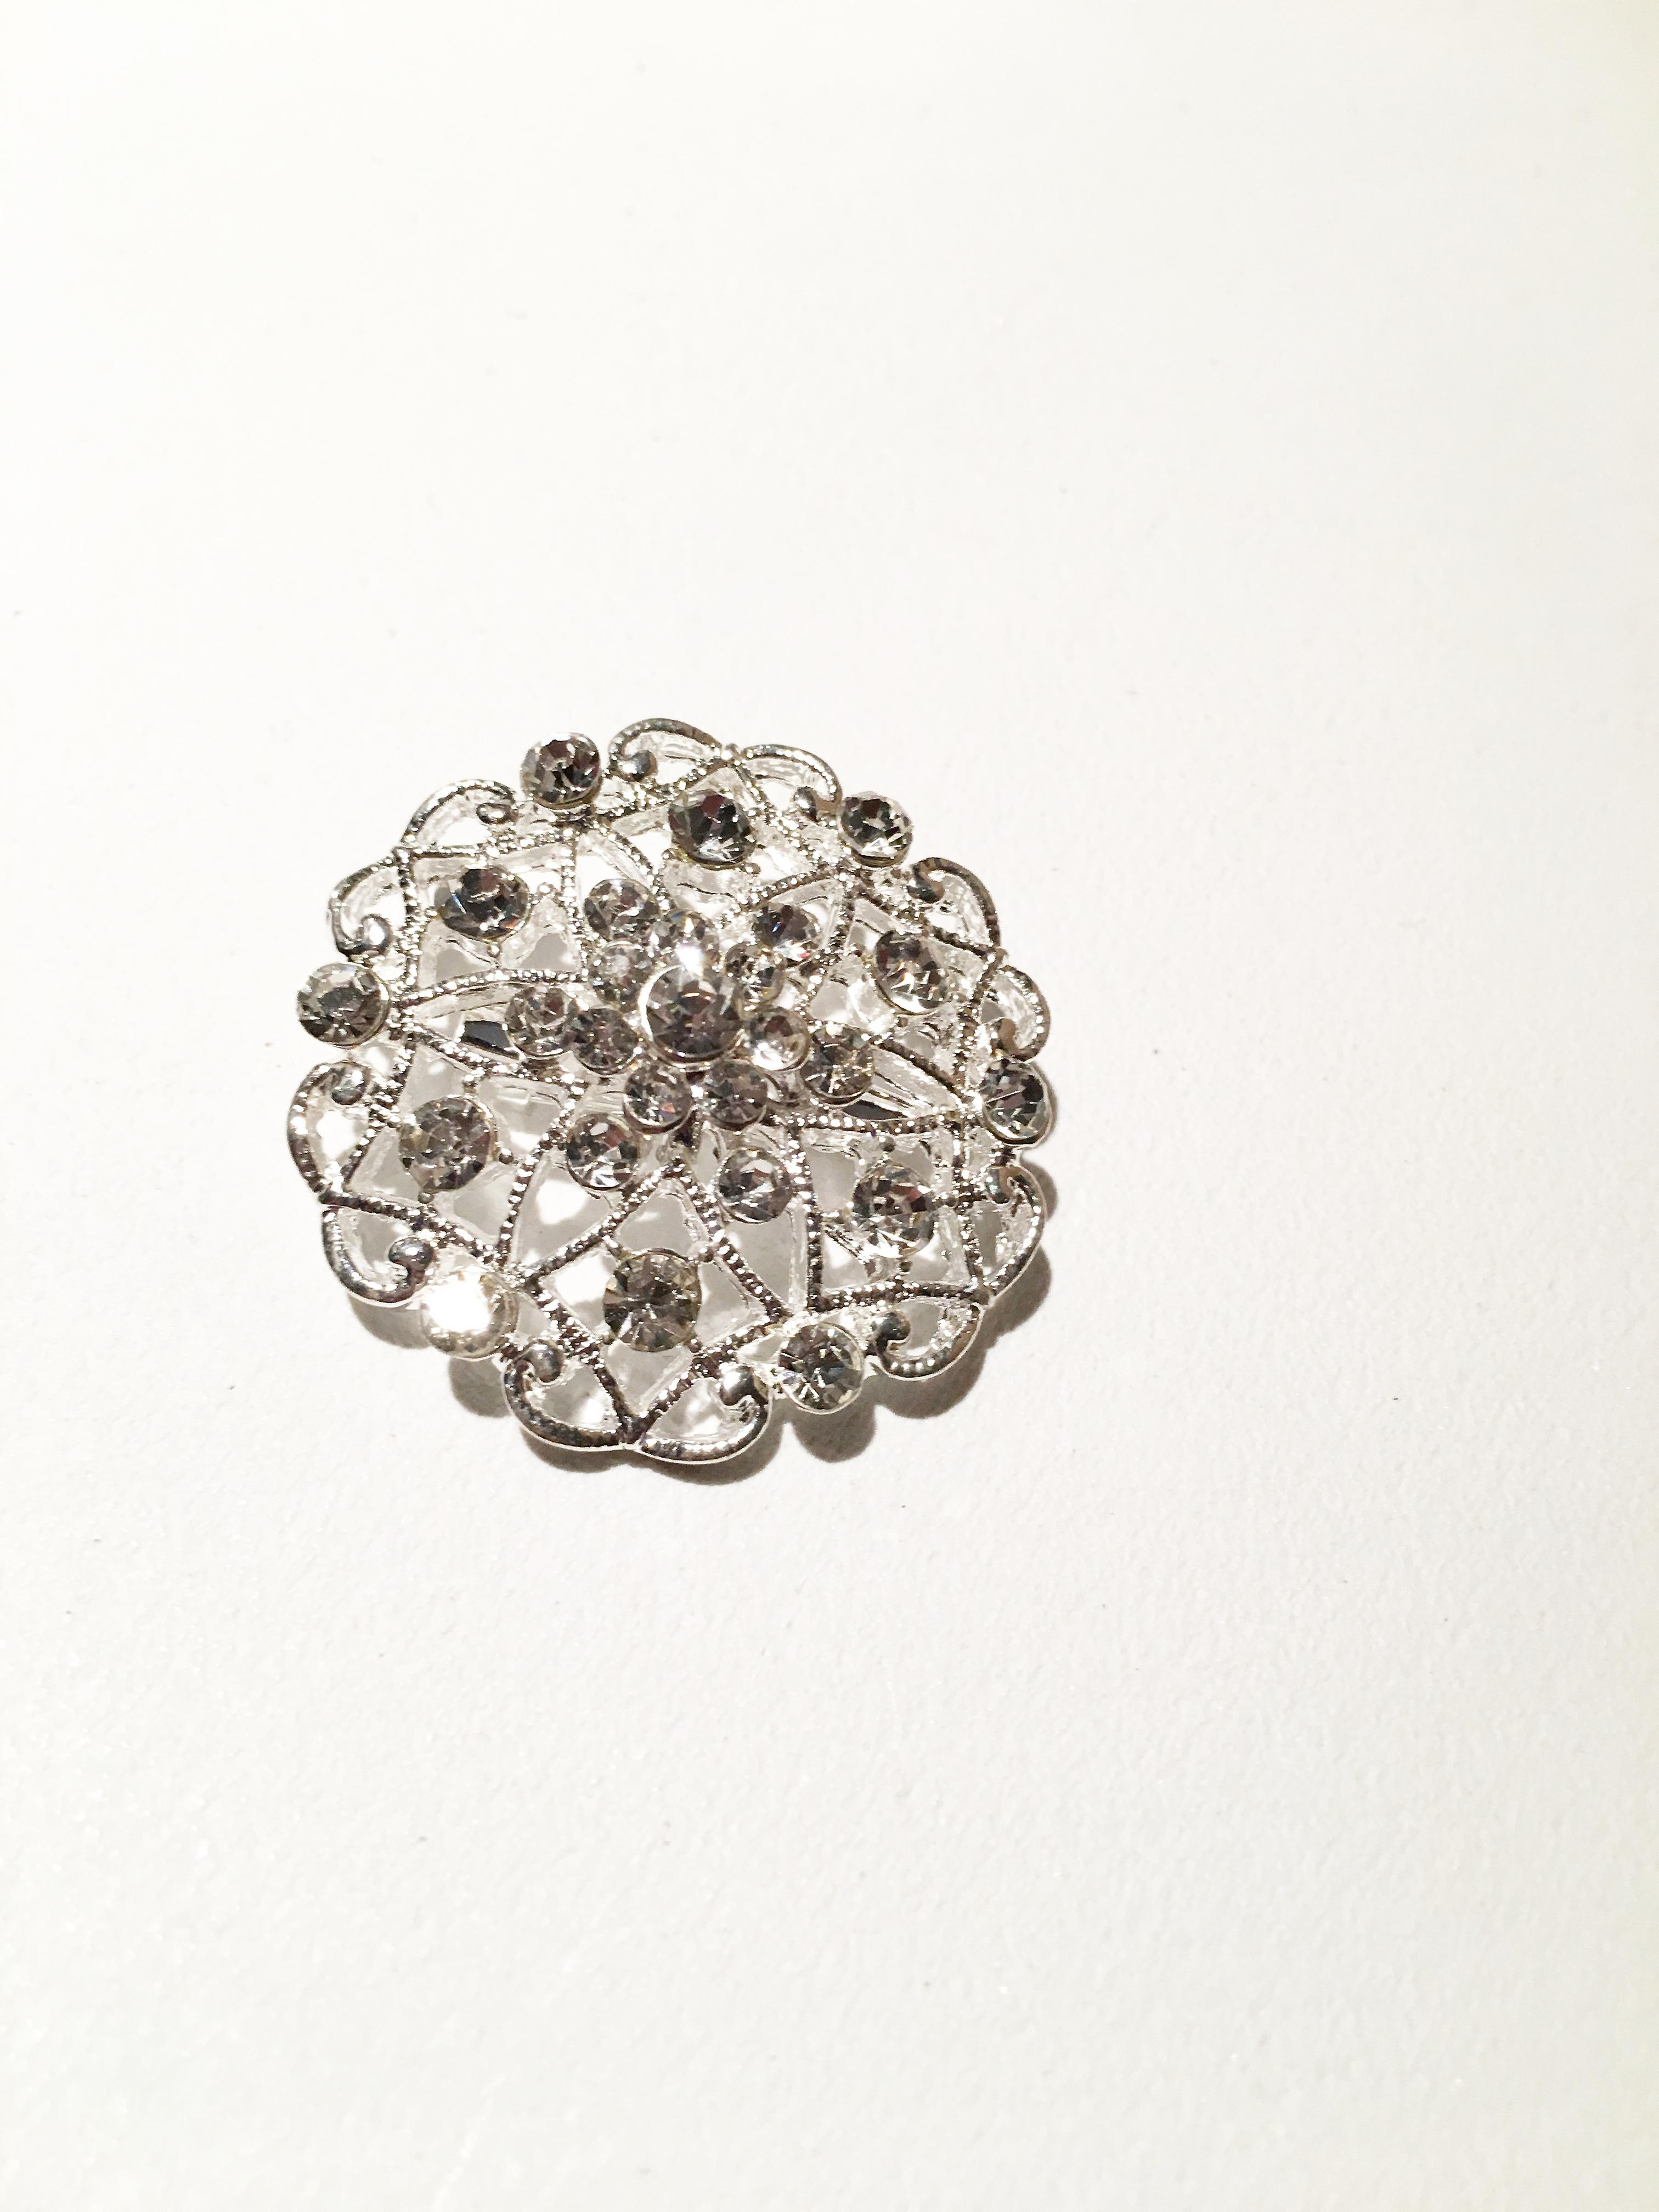 Fashionable Silver Diamonte Brooch